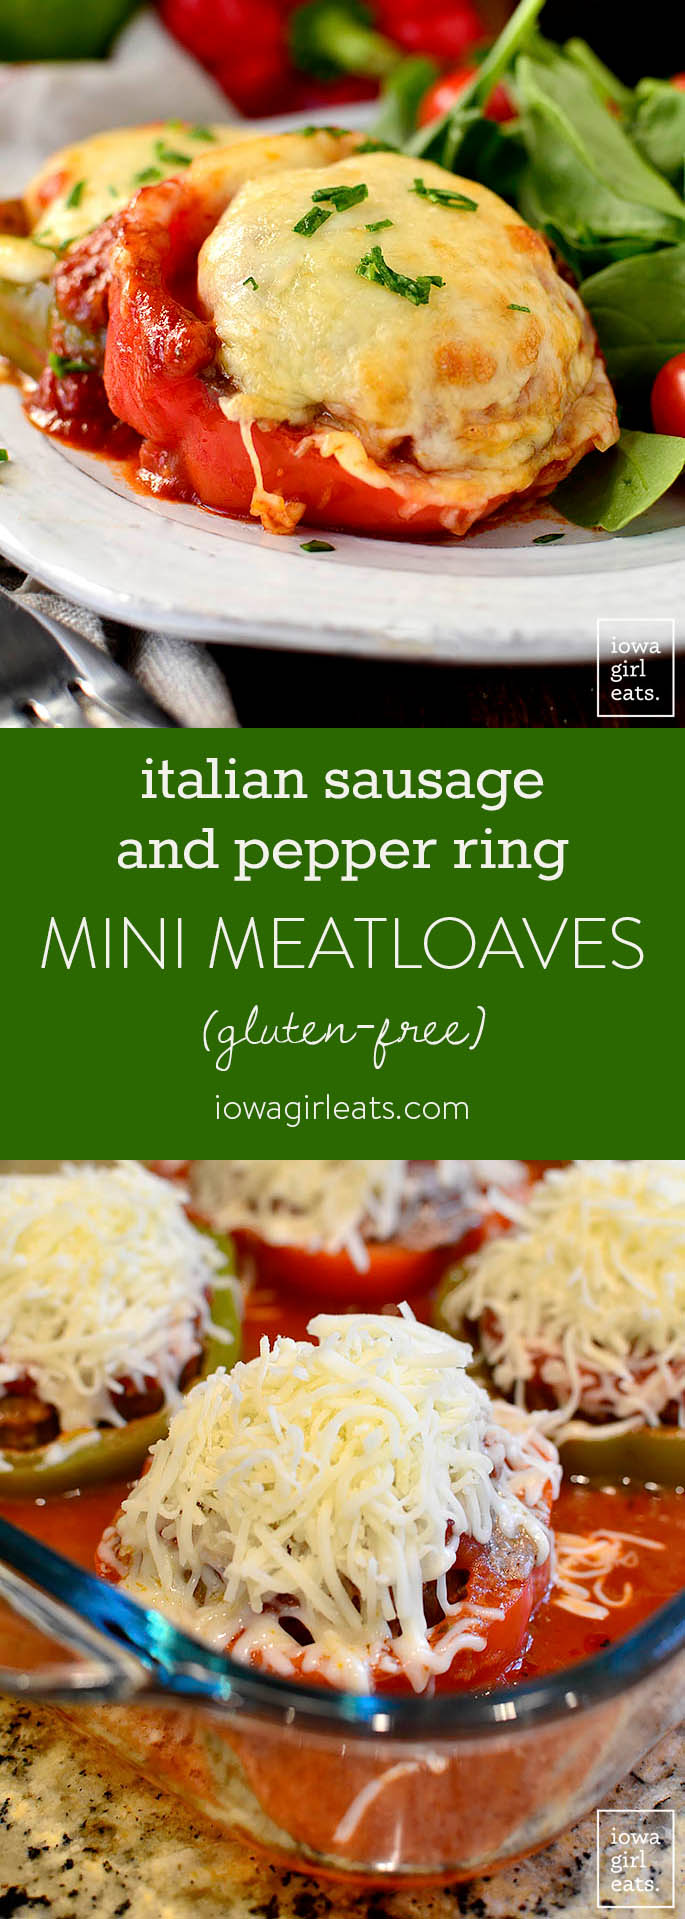 Italian Sausage and Pepper Ring Mini Meatloaves have all the taste of sausage and peppers, in a fun mini meatloaf presentation. My family loves this easy, gluten-free dinner recipe! | iowagirleats.com